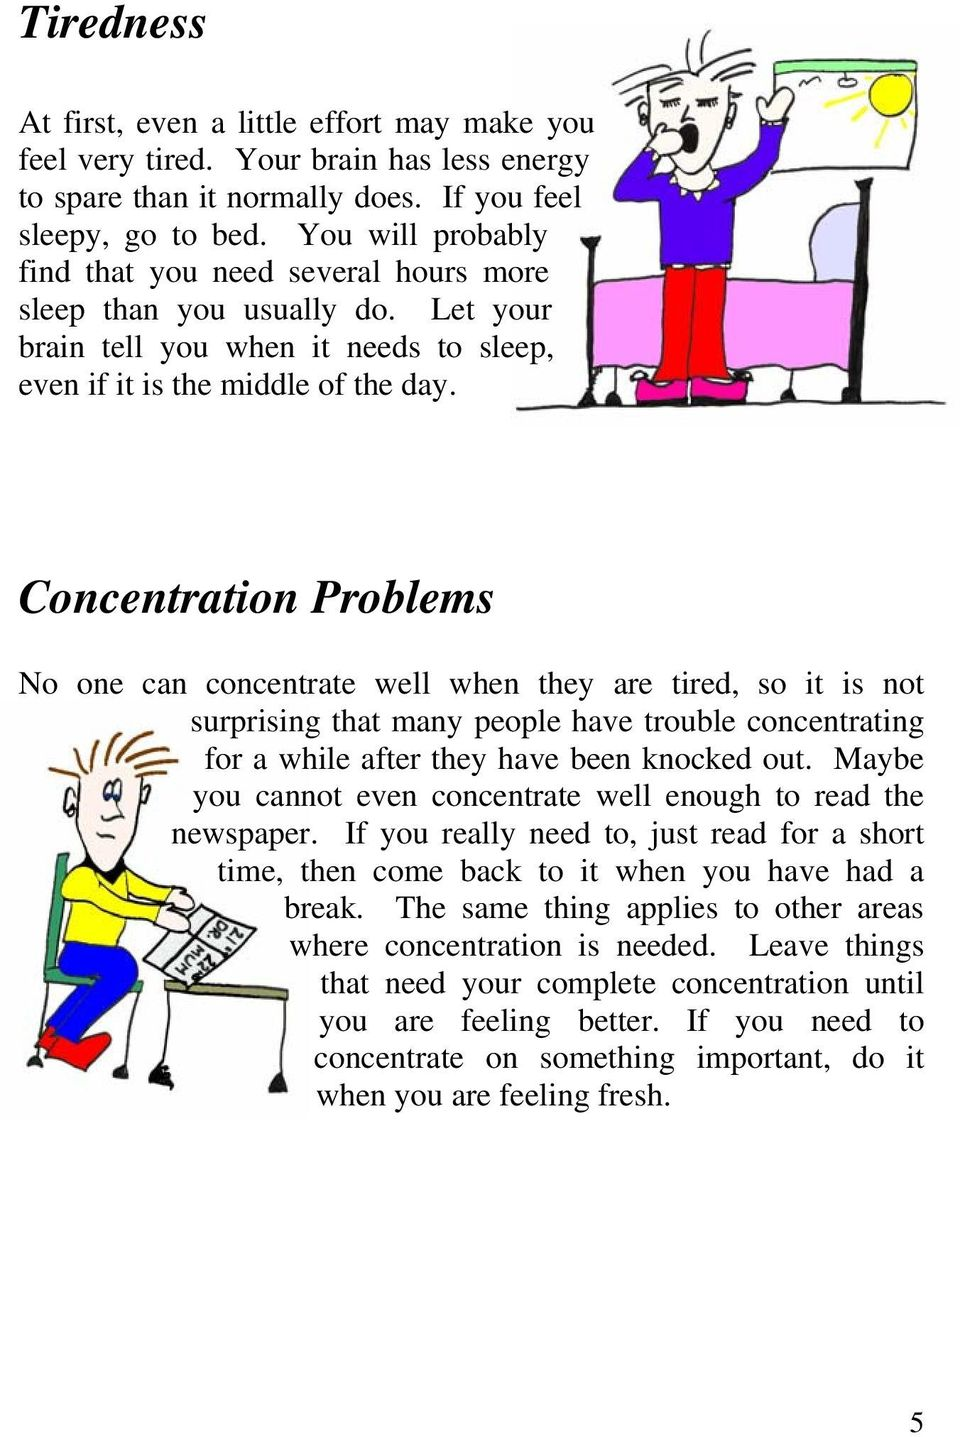 Concentration Problems No one can concentrate well when they are tired, so it is not surprising that many people have trouble concentrating for a while after they have been knocked out.